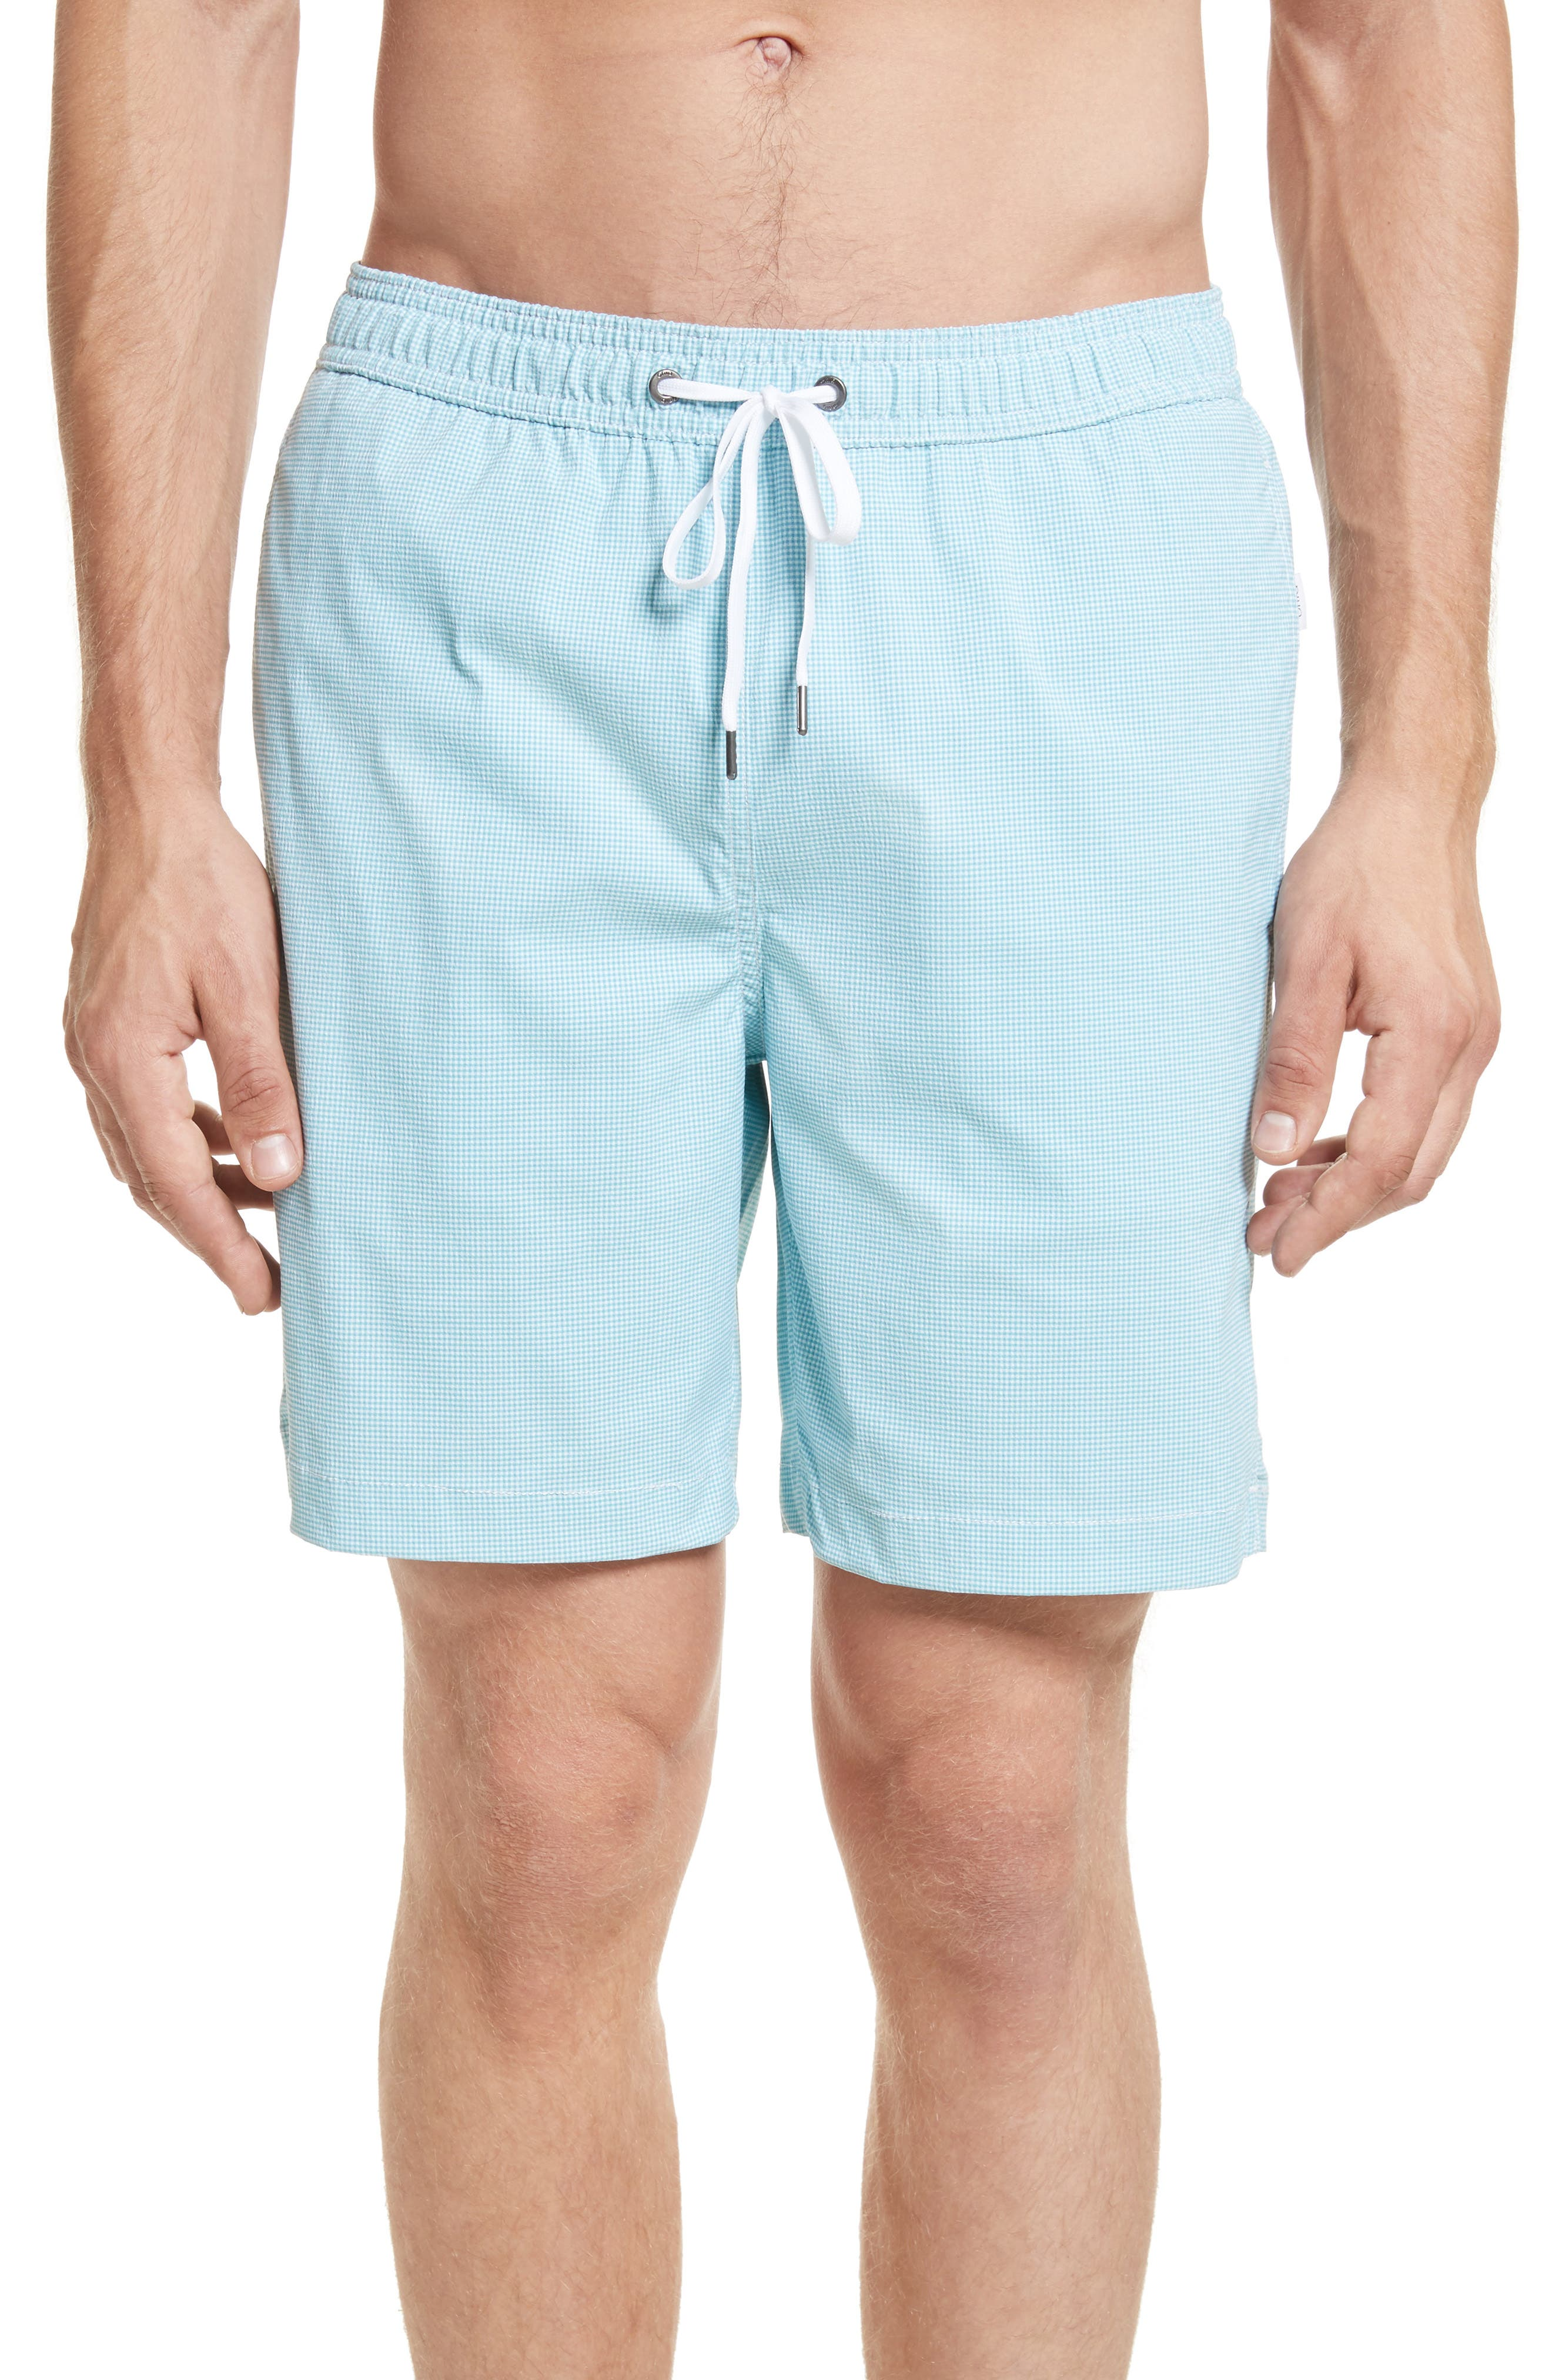 Charles Yarn Dyed Swim Trunks,                         Main,                         color, Agave/White